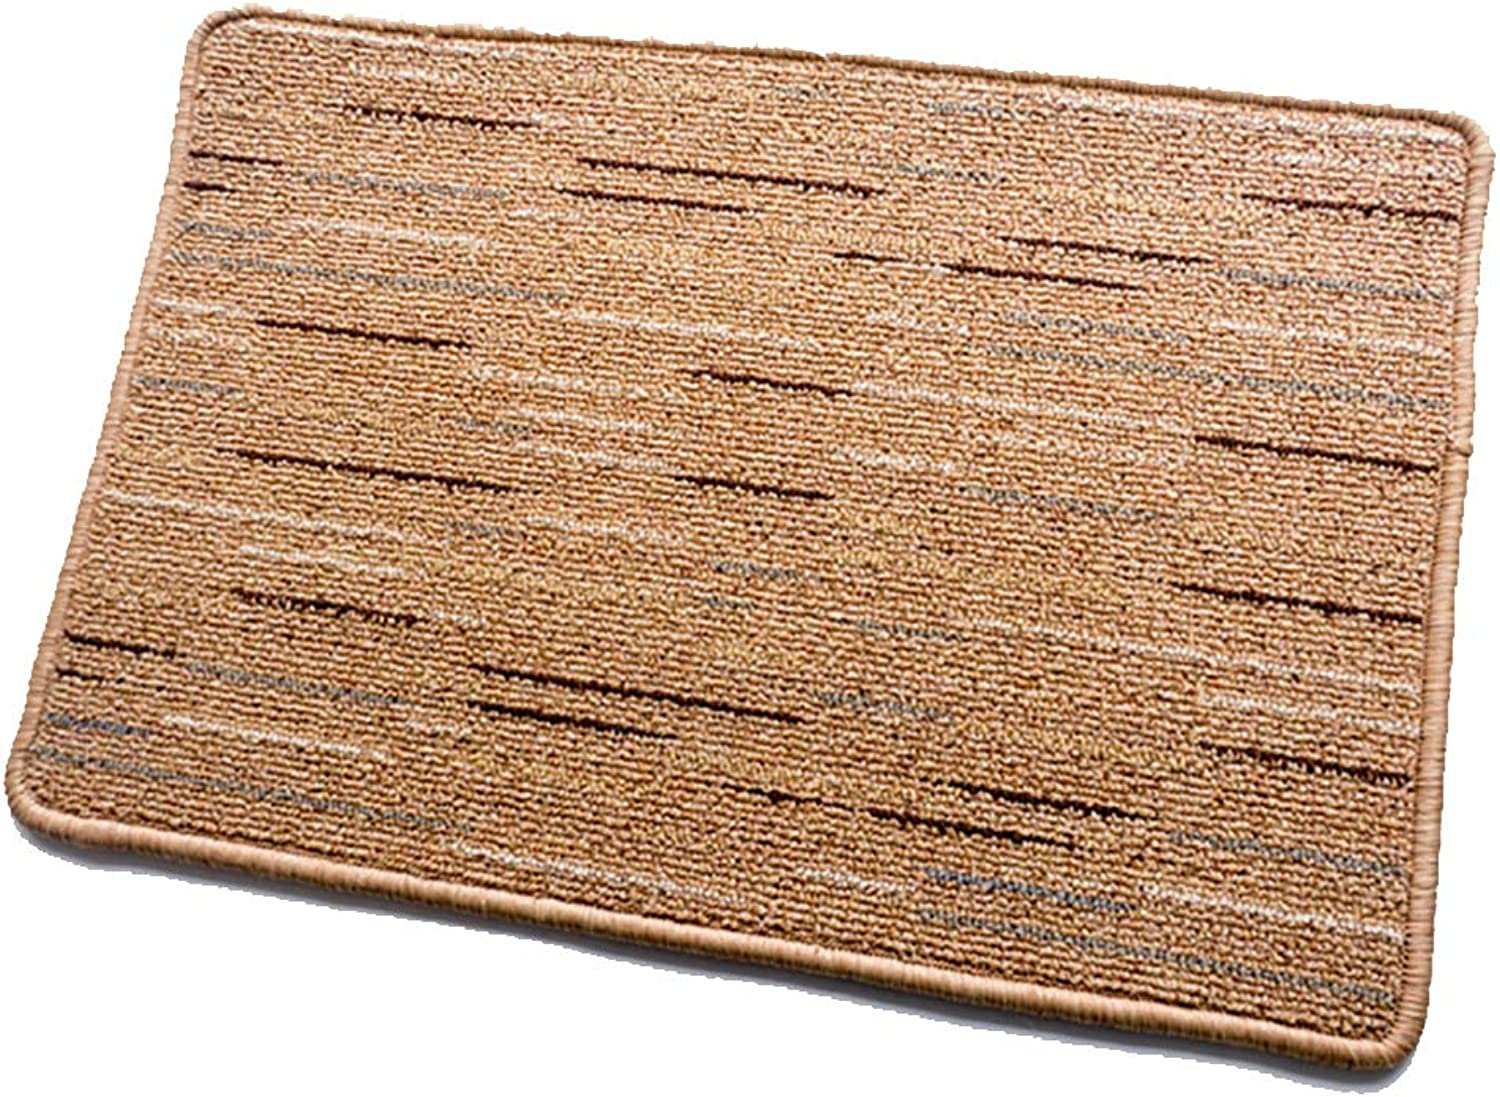 Door mat,Kitchen Rug Floor mat Low Profile Door mats Non-Slip Living Room Bedroom Area Rug Carpet-Yellow 70x140cm(28x55inch)